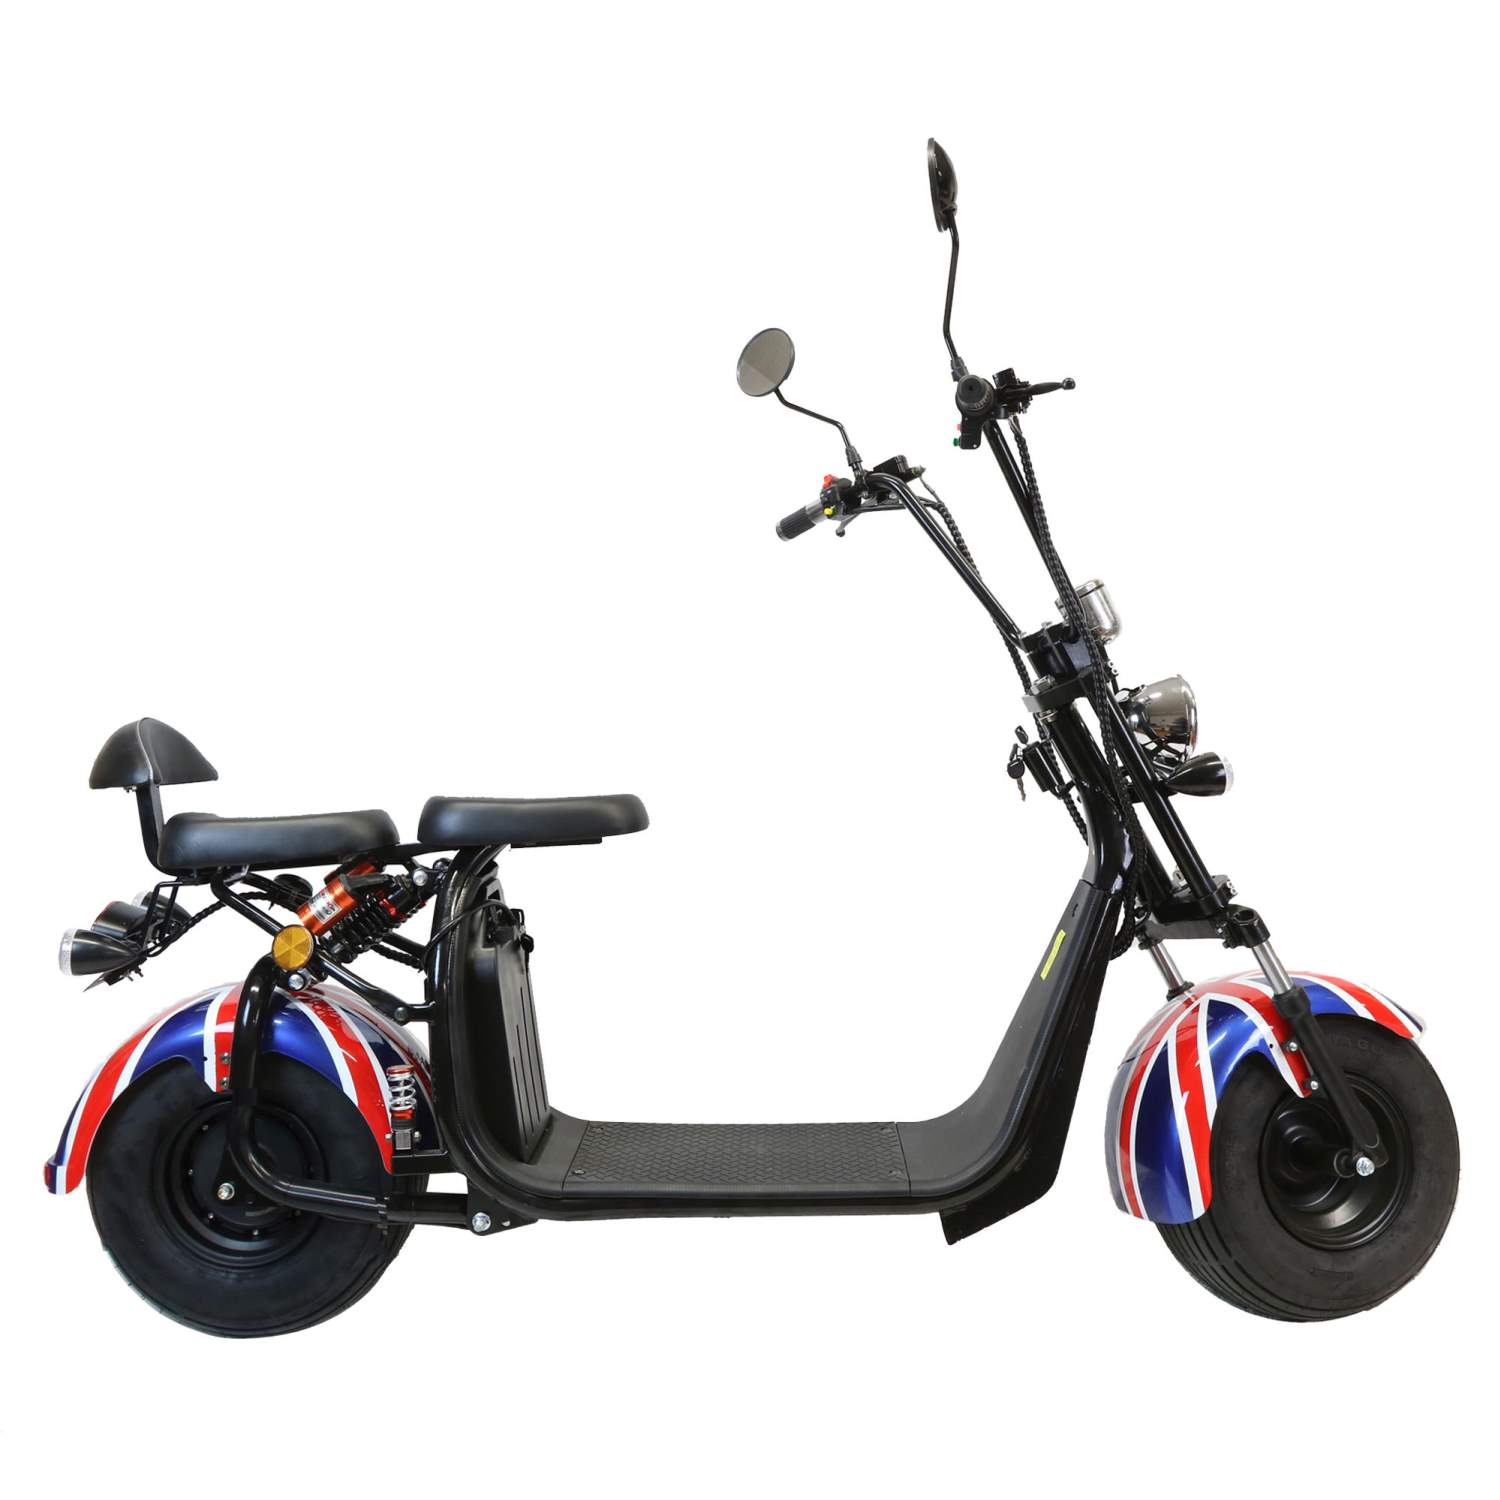 elektro scooter mit stra enzulassung e roller chopper 35km. Black Bedroom Furniture Sets. Home Design Ideas